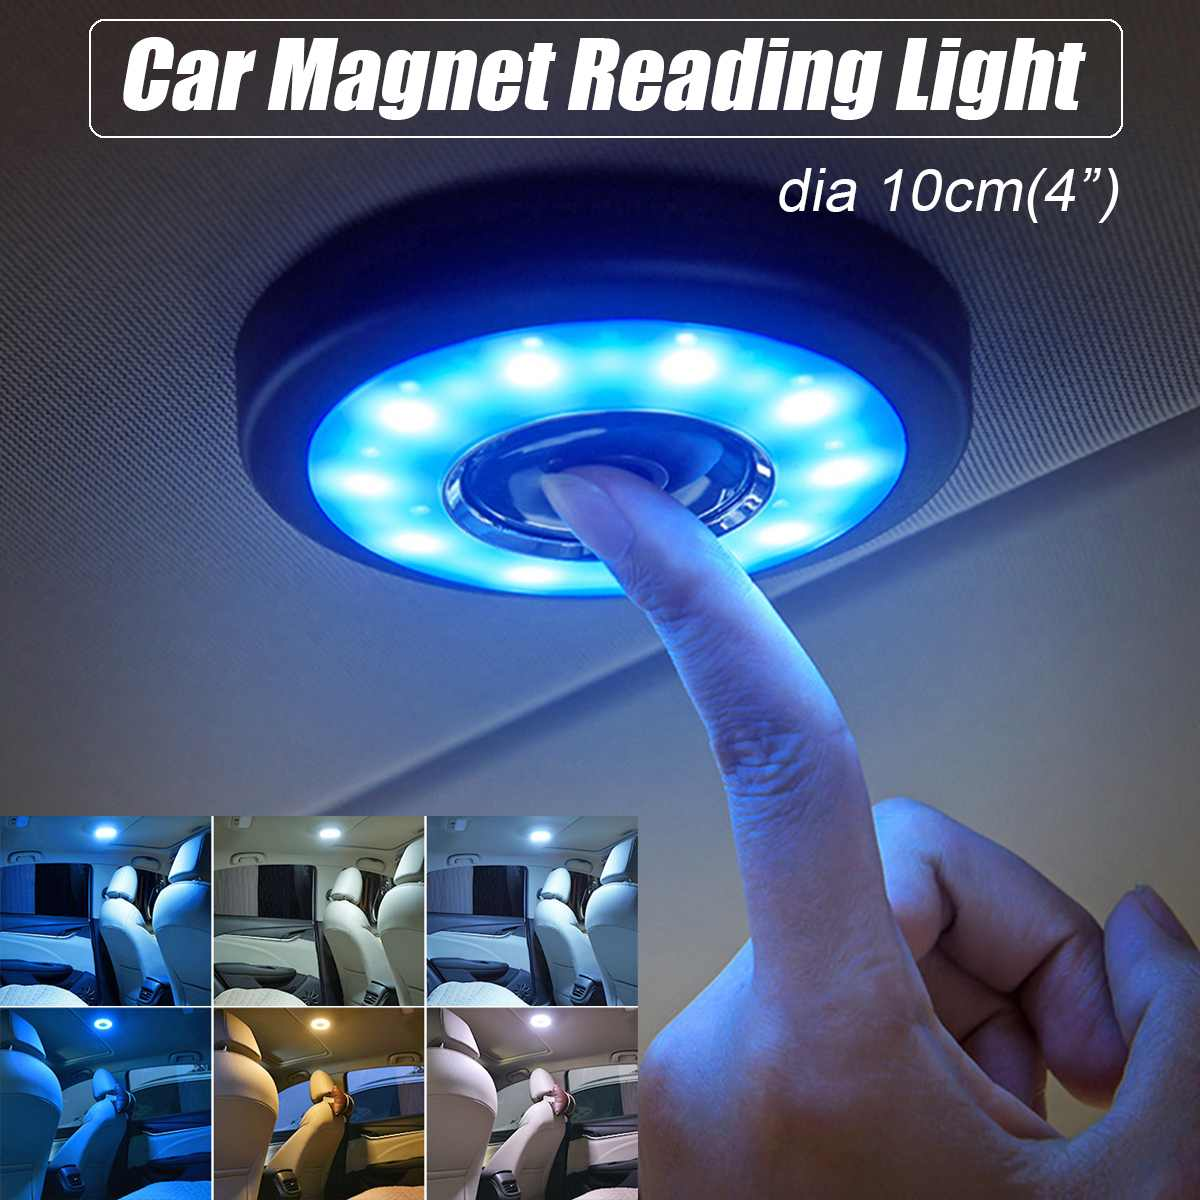 LED Car Interior Reading Light Auto USB Charging Roof Magnet Auto Day Light Trunk Drl Square Dome Vehicle Indoor Ceiling Lamp